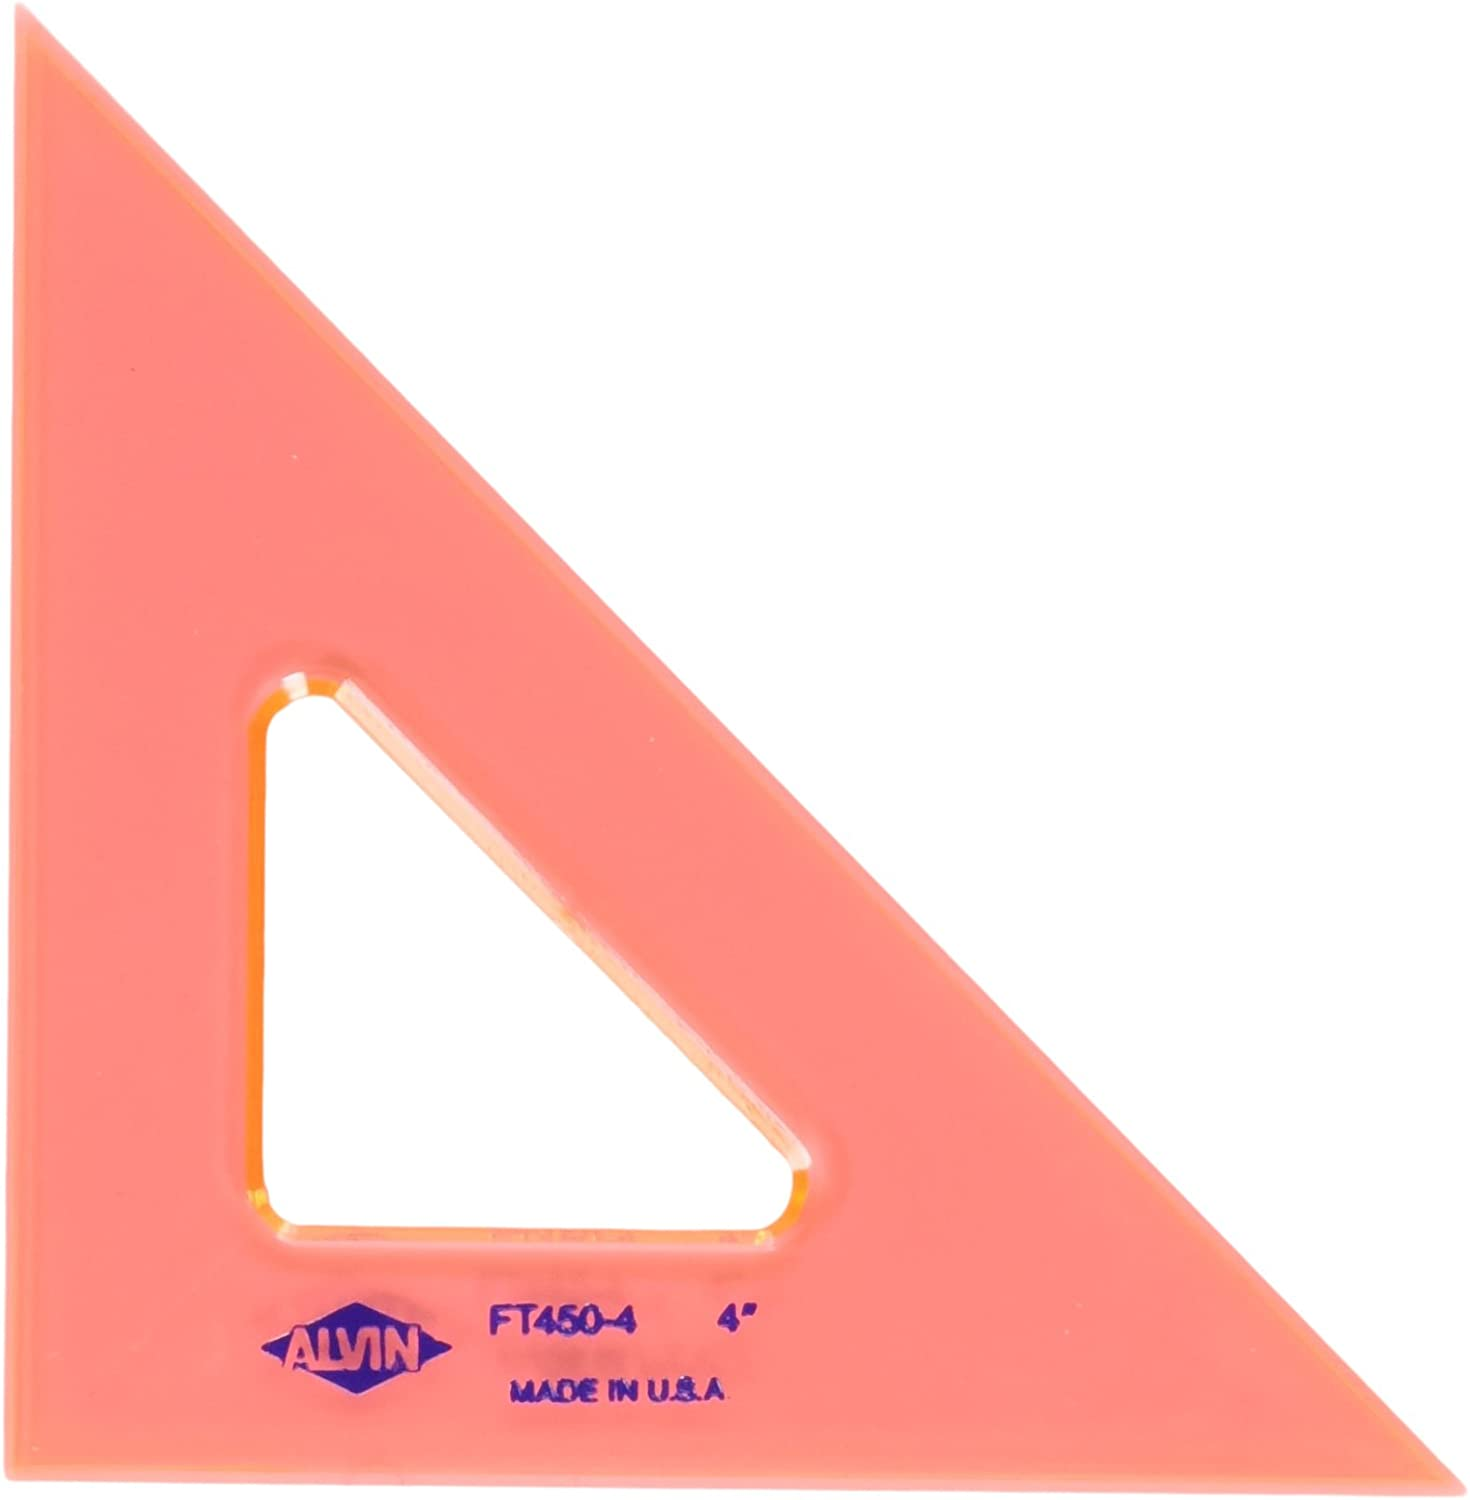 Alvin, Triangle Ruler with Fluorescent Edges, Drafting Tool Kits - 4-inches, 45/90 Angle: Home & Kitchen